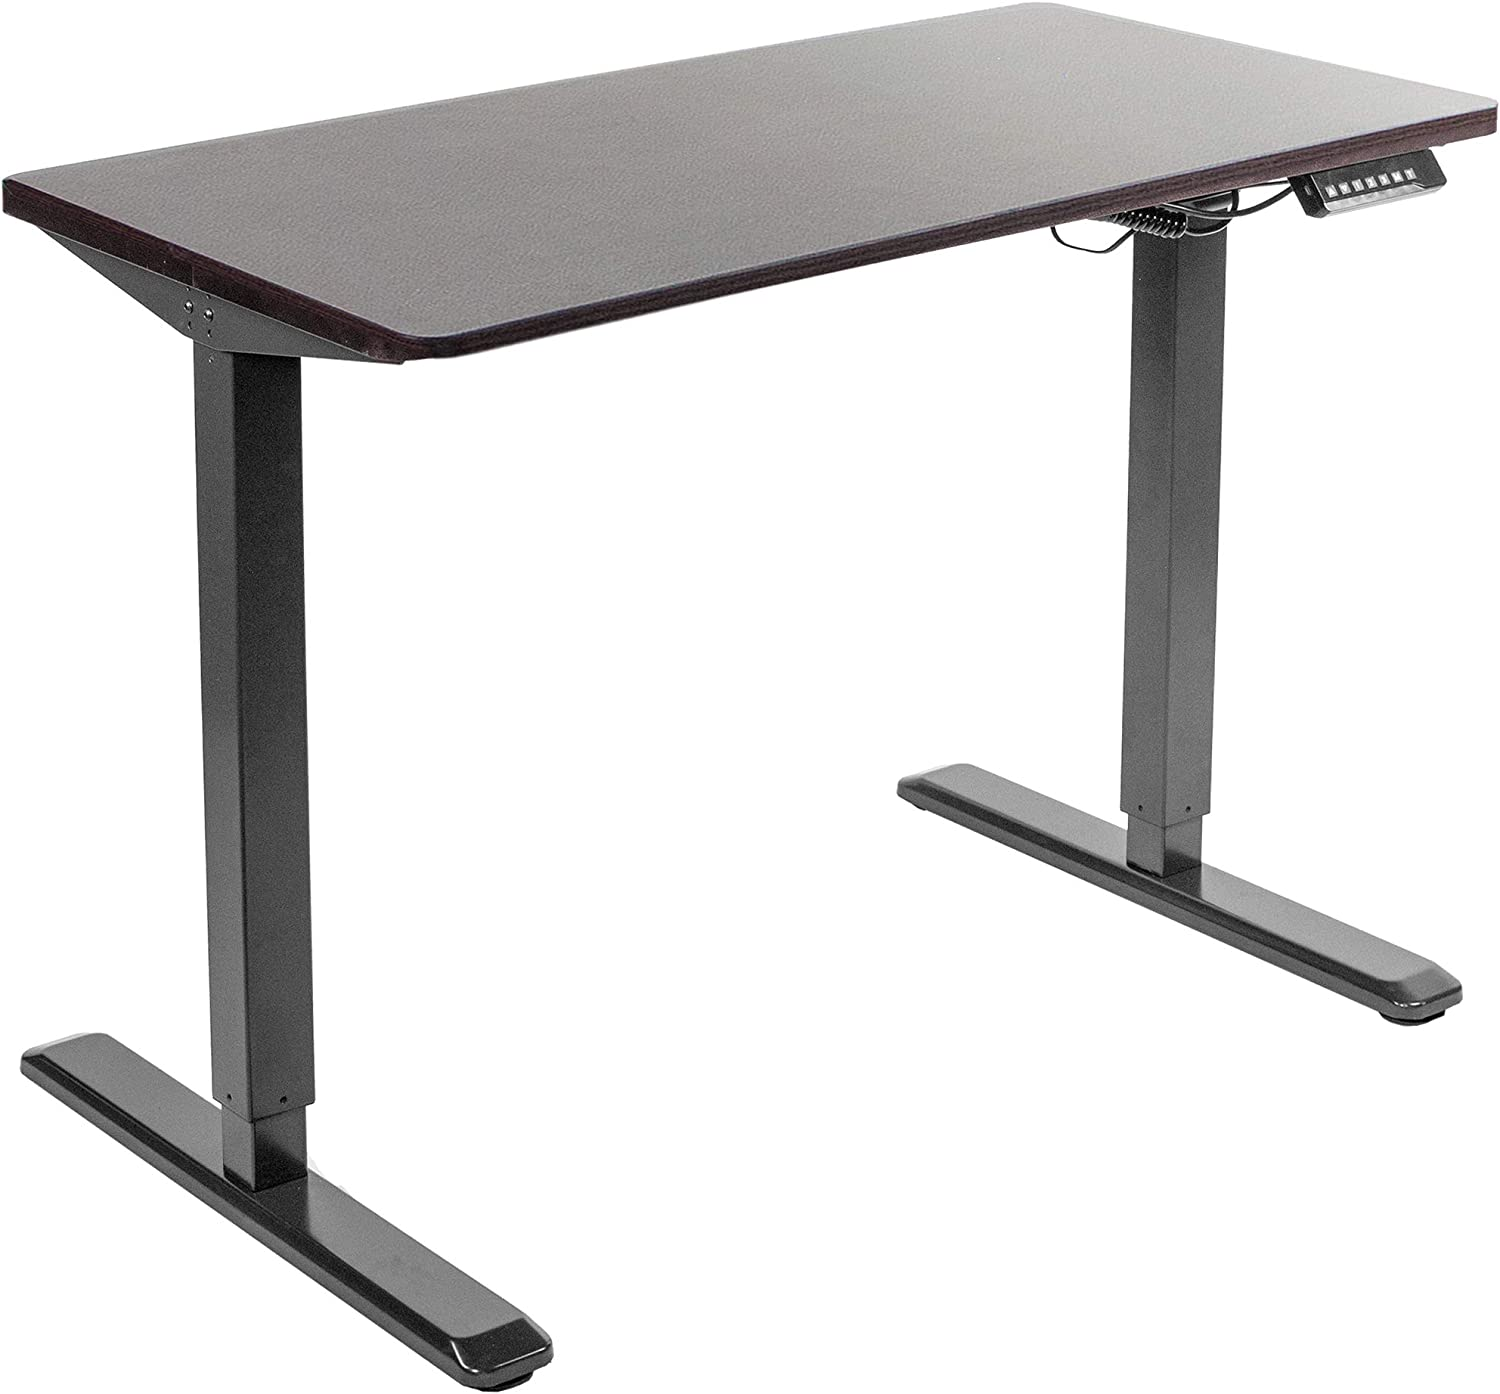 """VIVO Electric 43"""" x 24"""" Stand Up Desk, Espresso Solid One-Piece Table Top, Black Frame, Height Adjustable Standing Workstation with Memory Preset Controller (DESK-KIT-1B4E)"""